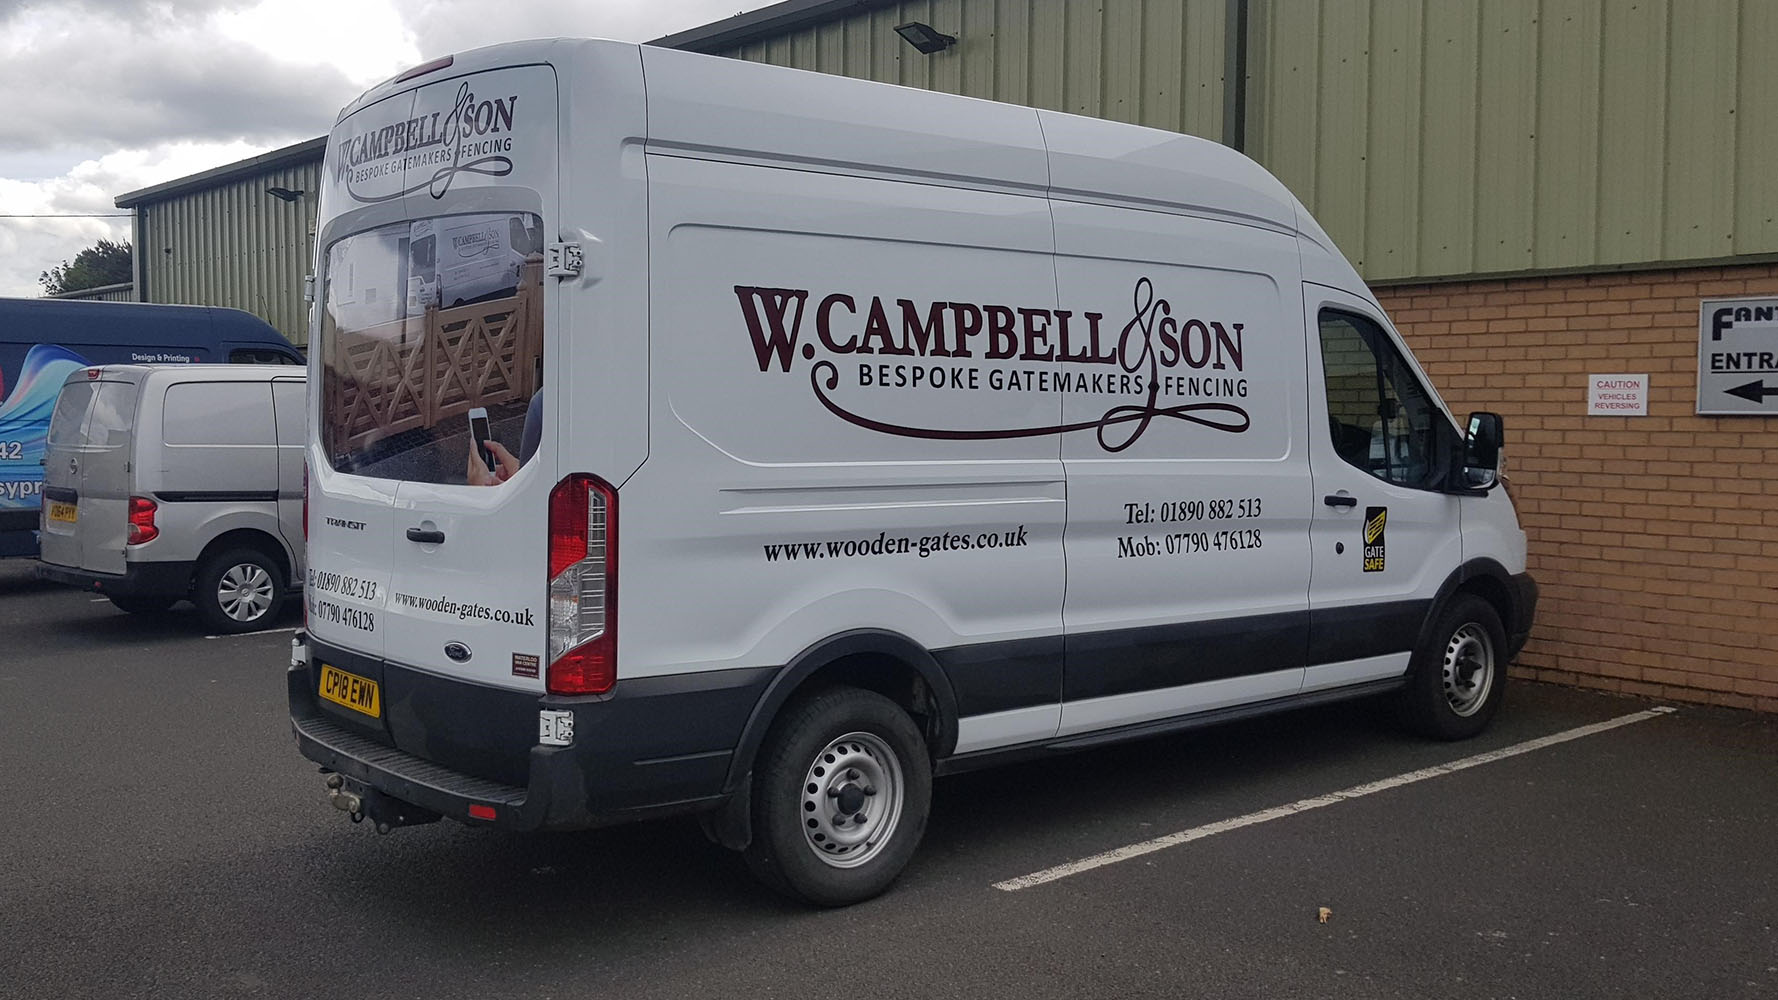 W Campbell & Son Van Livery